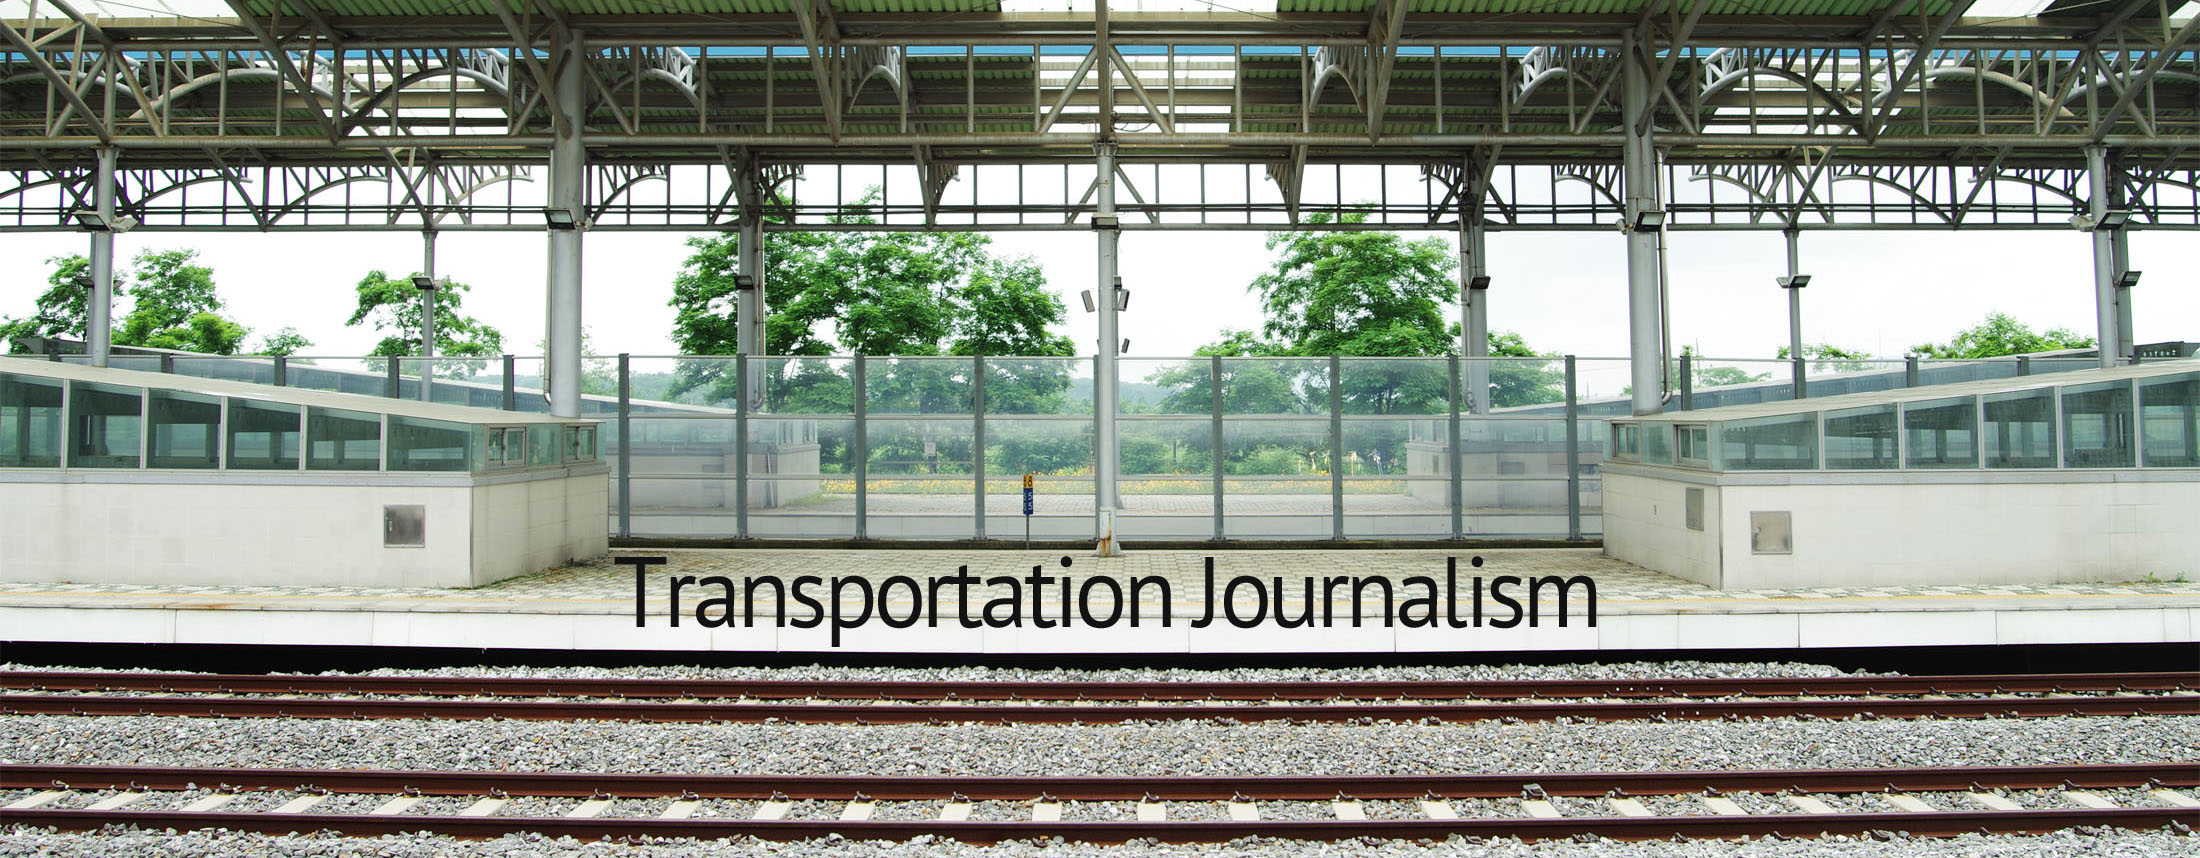 Transportation Journalism